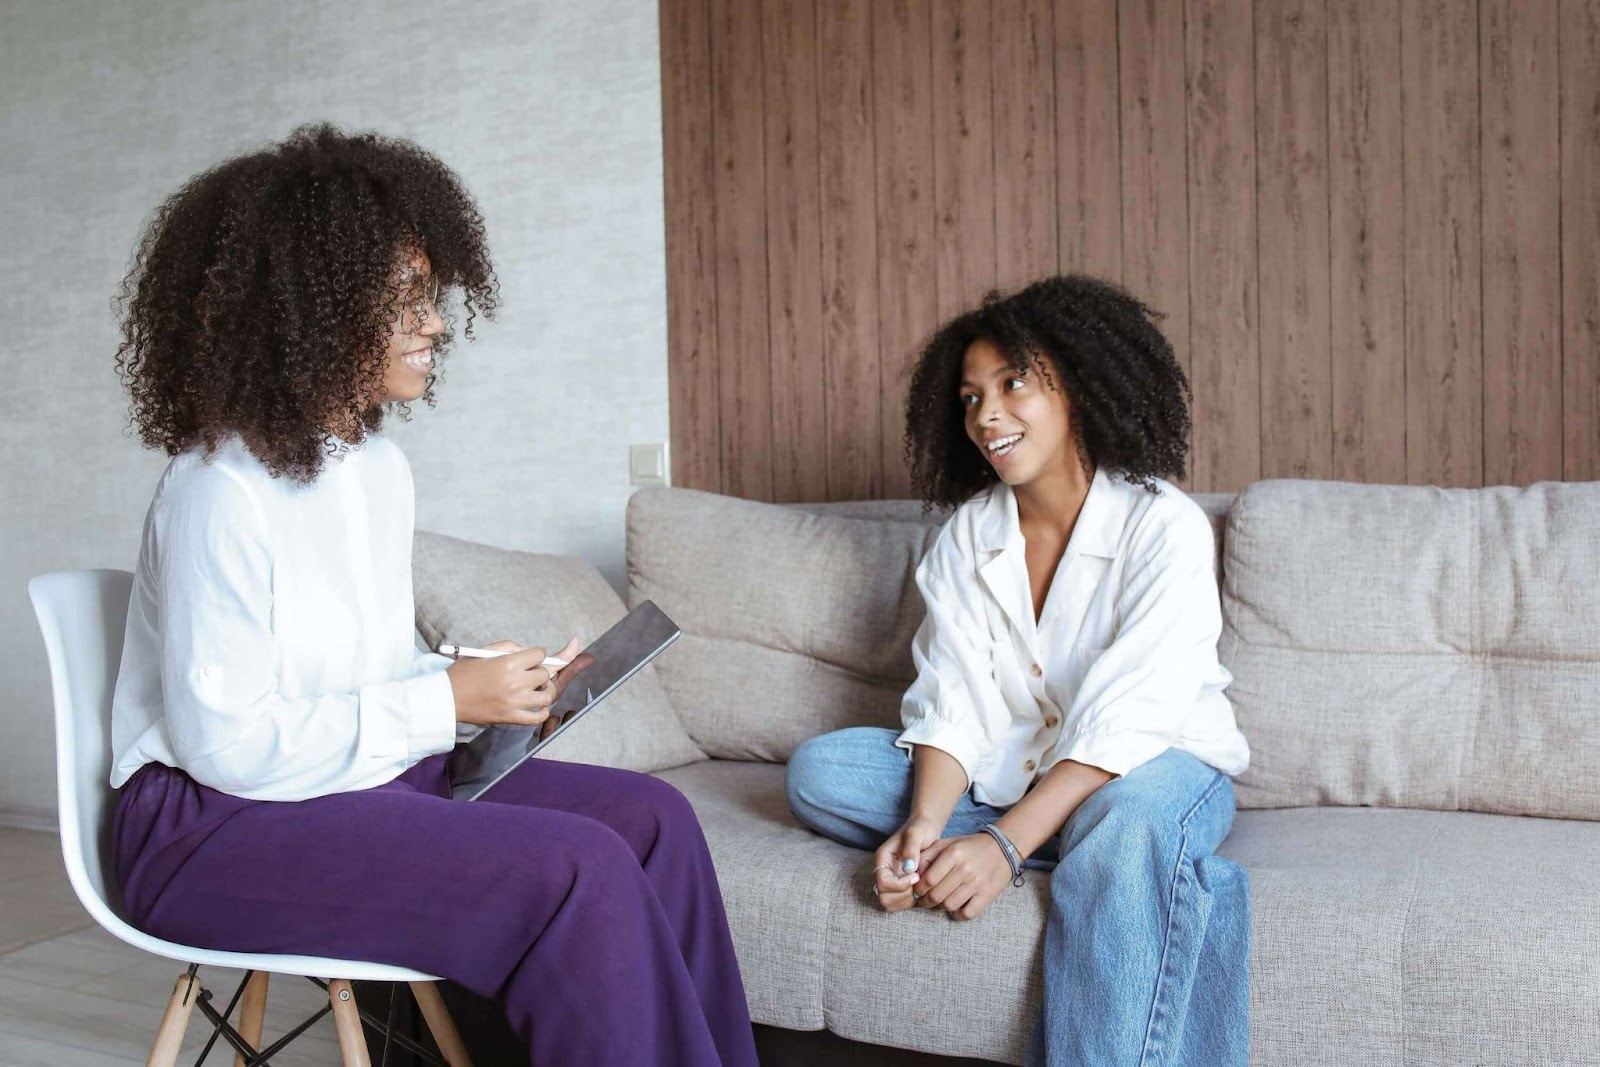 A woman and her therapist, talking and smiling